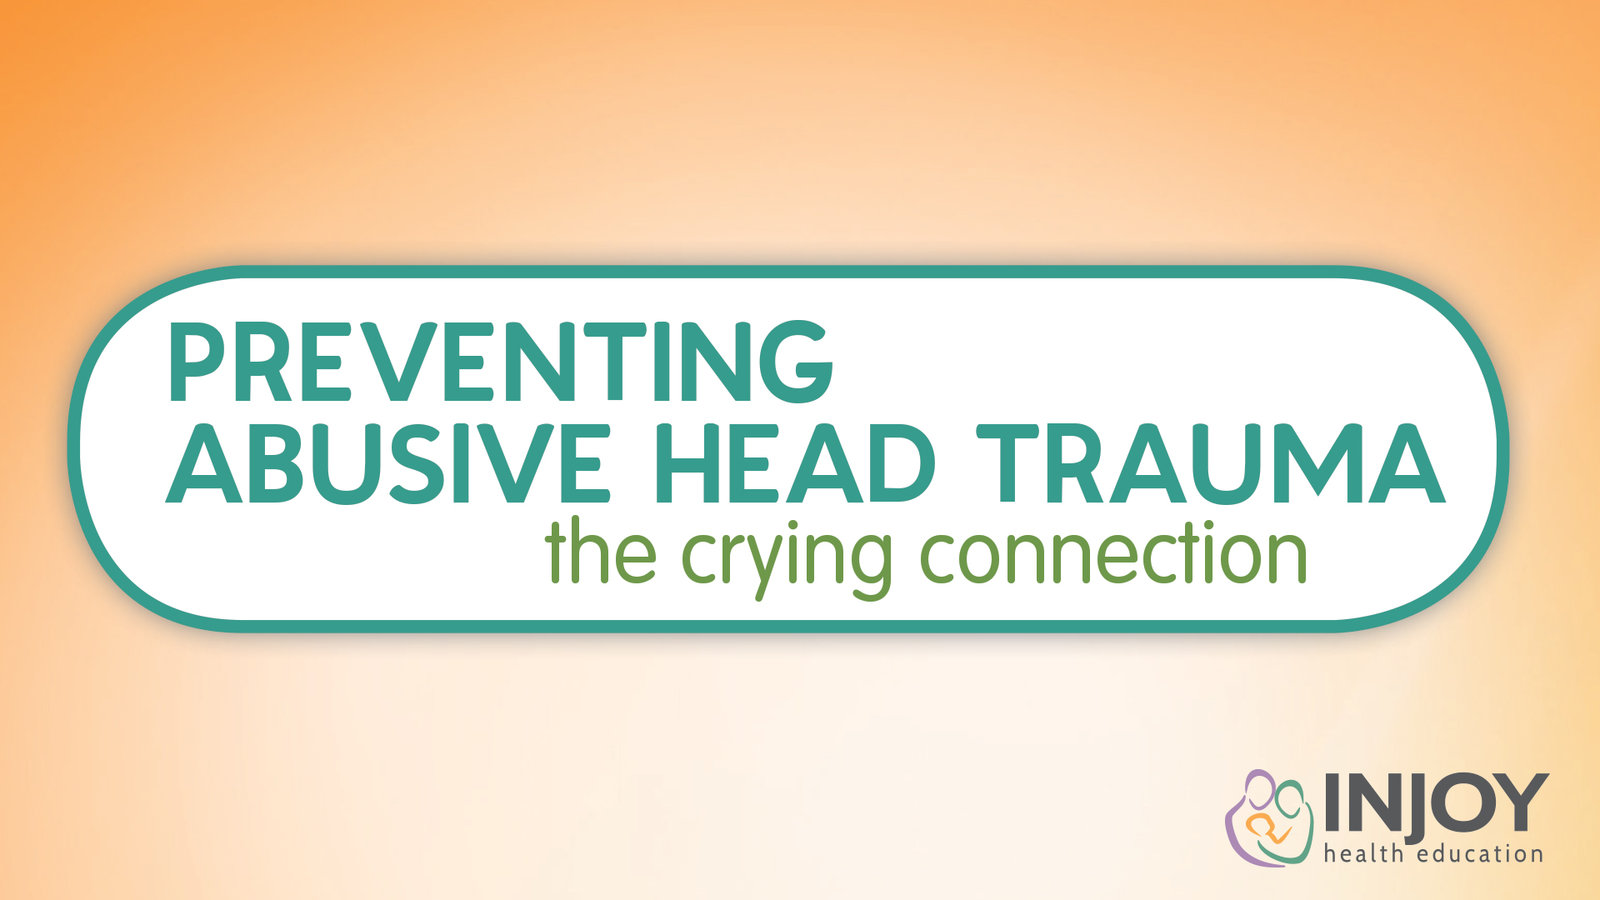 Preventing Abusive Head Trauma